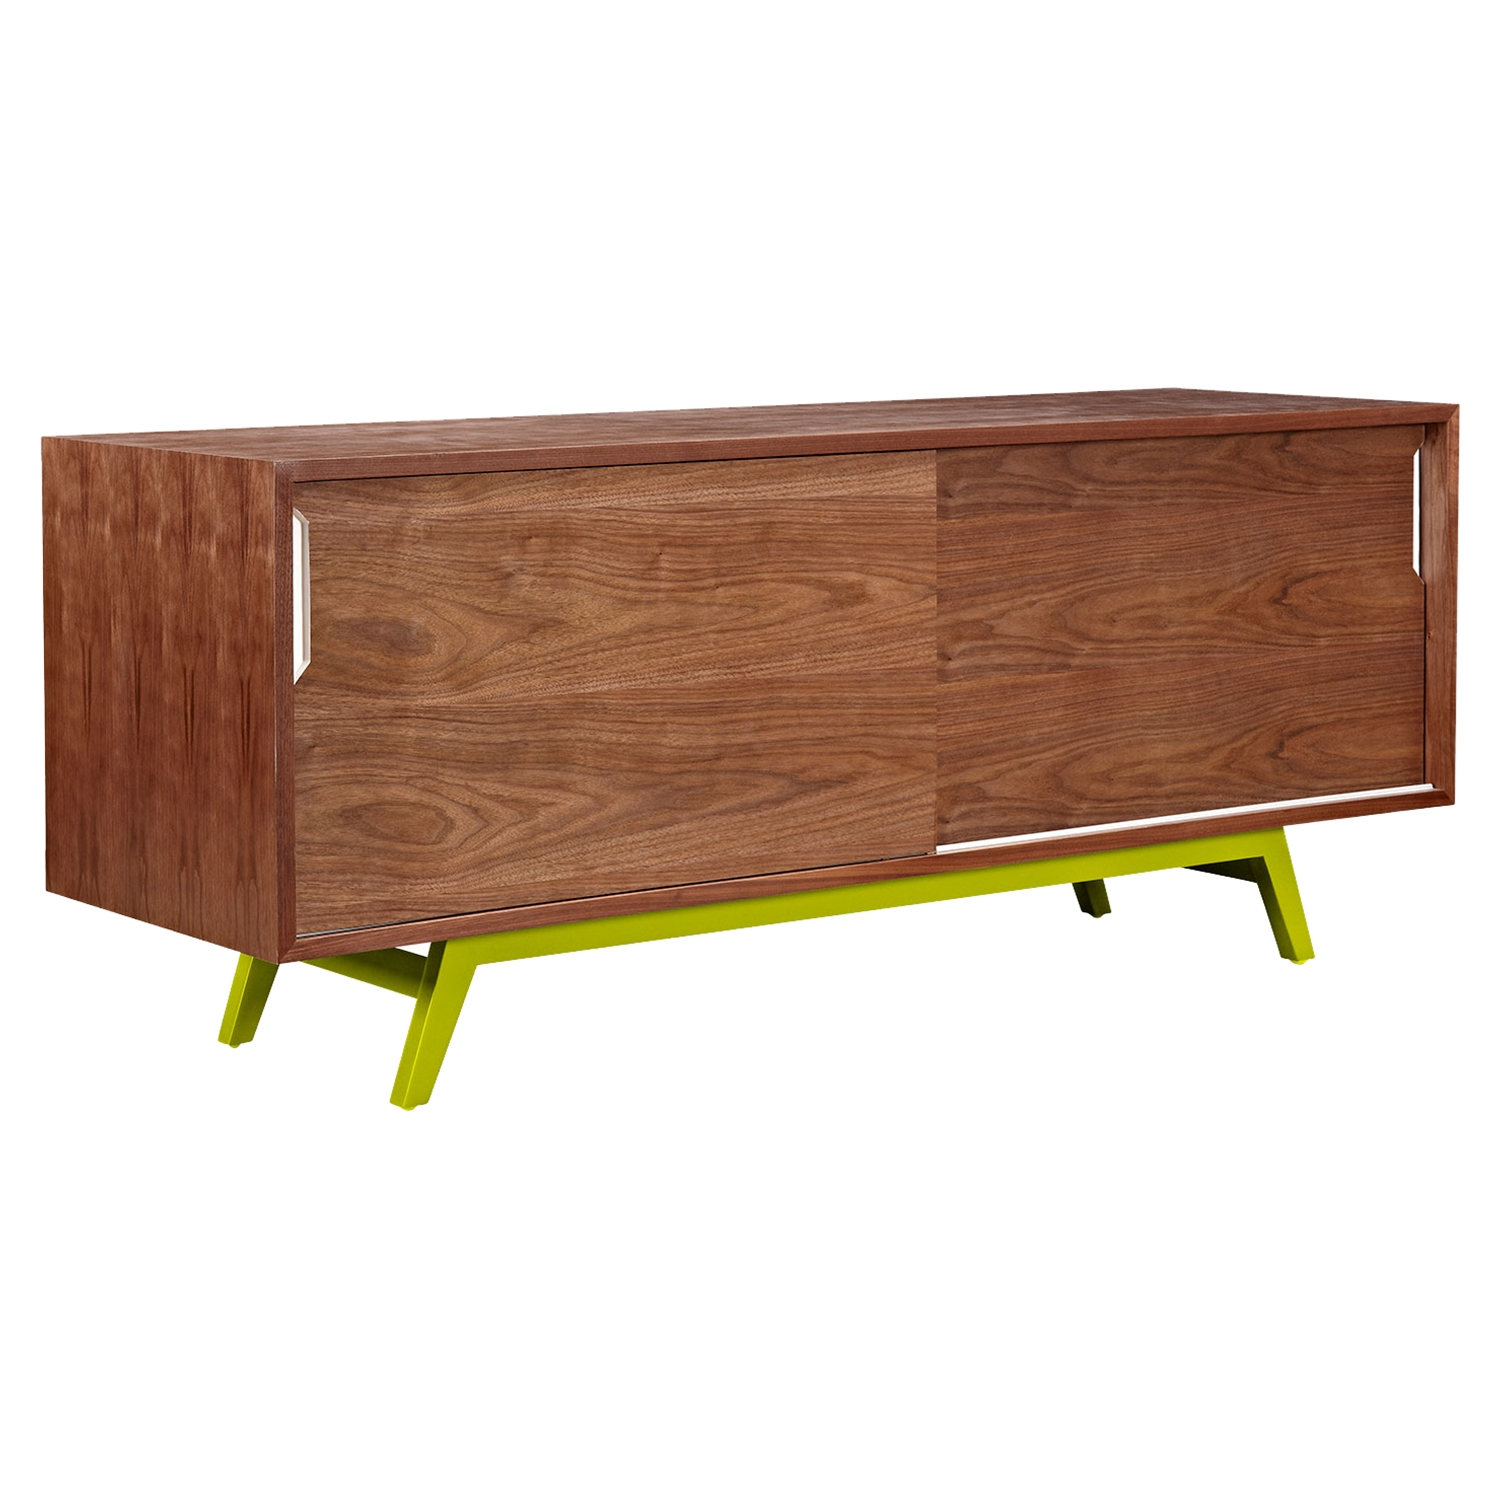 Elsa 2 Sliding Doors Sideboard - Walnut - NYEK-224404